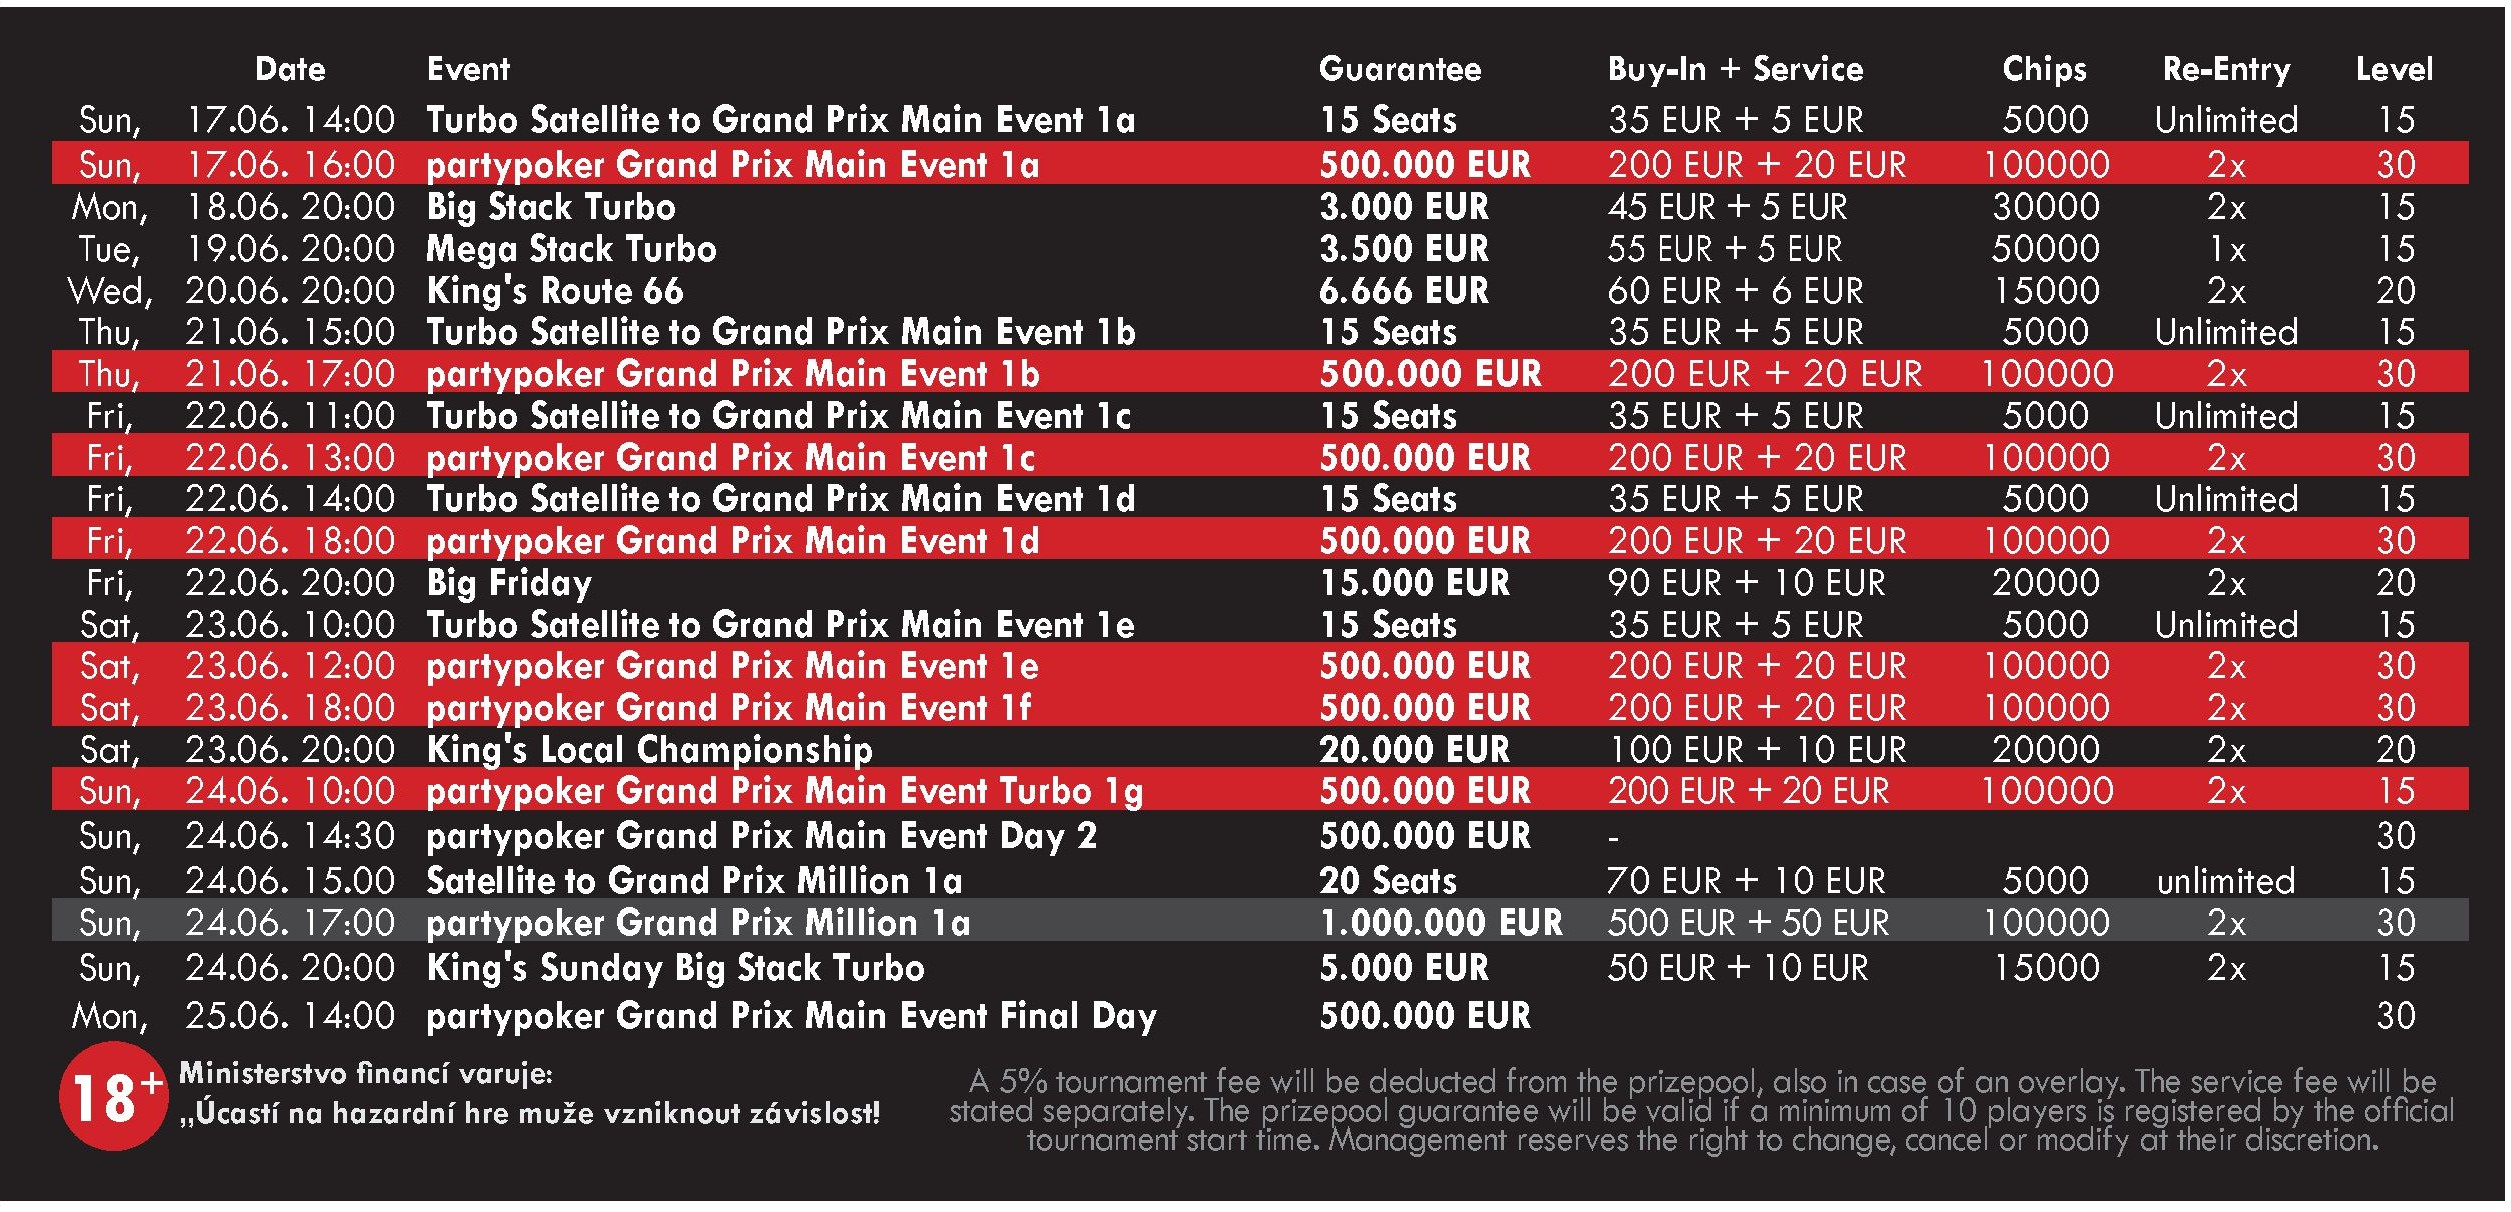 Schedule partypoker Grand Prix Germany